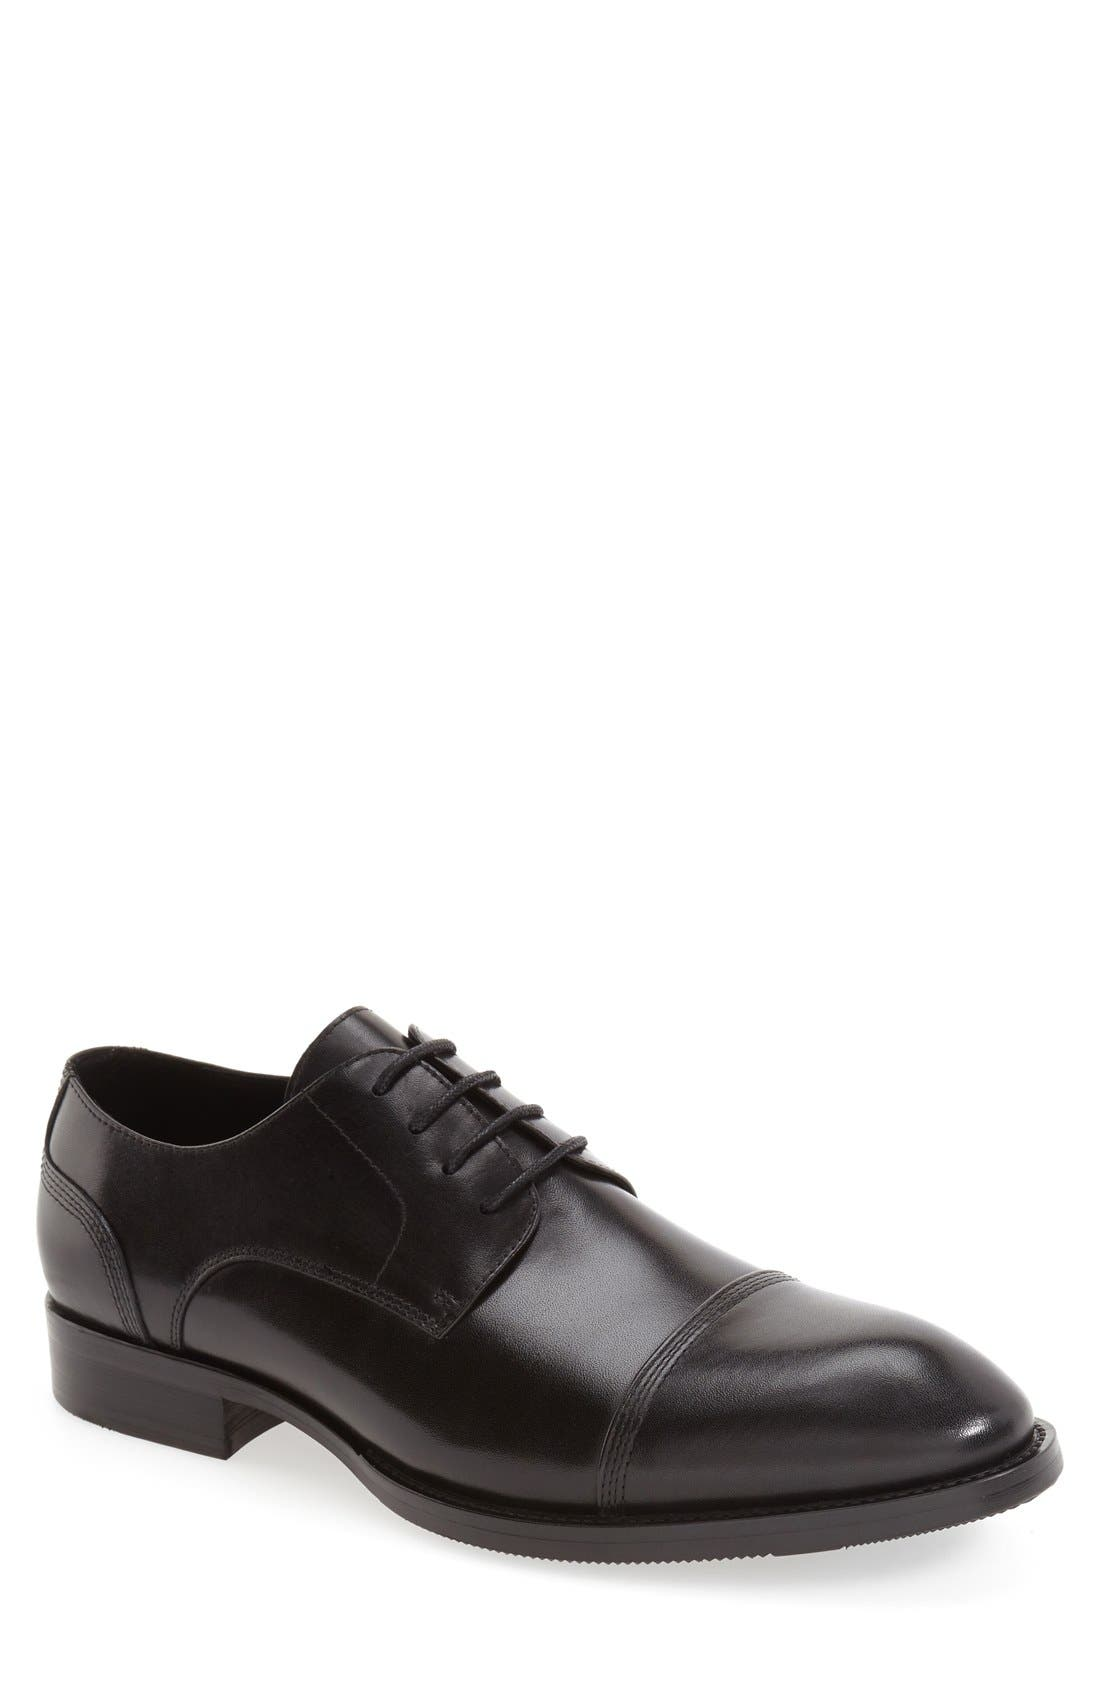 'Gauguin' Cap Toe Derby,                         Main,                         color, 001